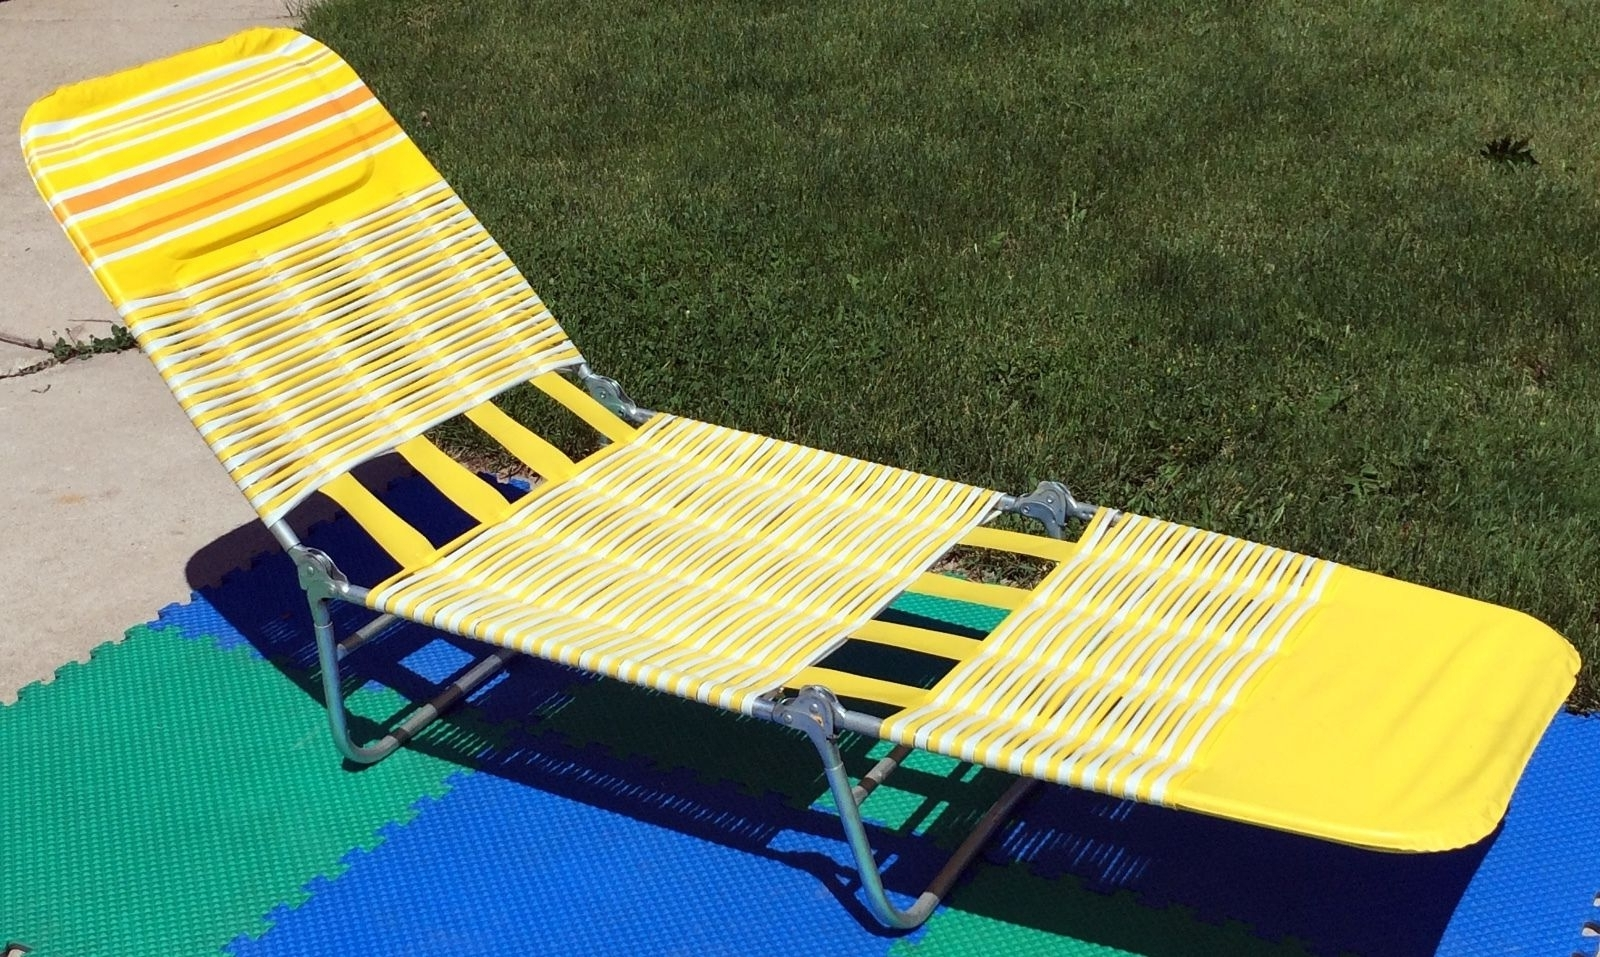 Web Chaise Lounge Lawn Chairs Regarding Famous Uncategorized : Folding Chaise Lounge Chair In Fantastic Chaise (View 15 of 15)